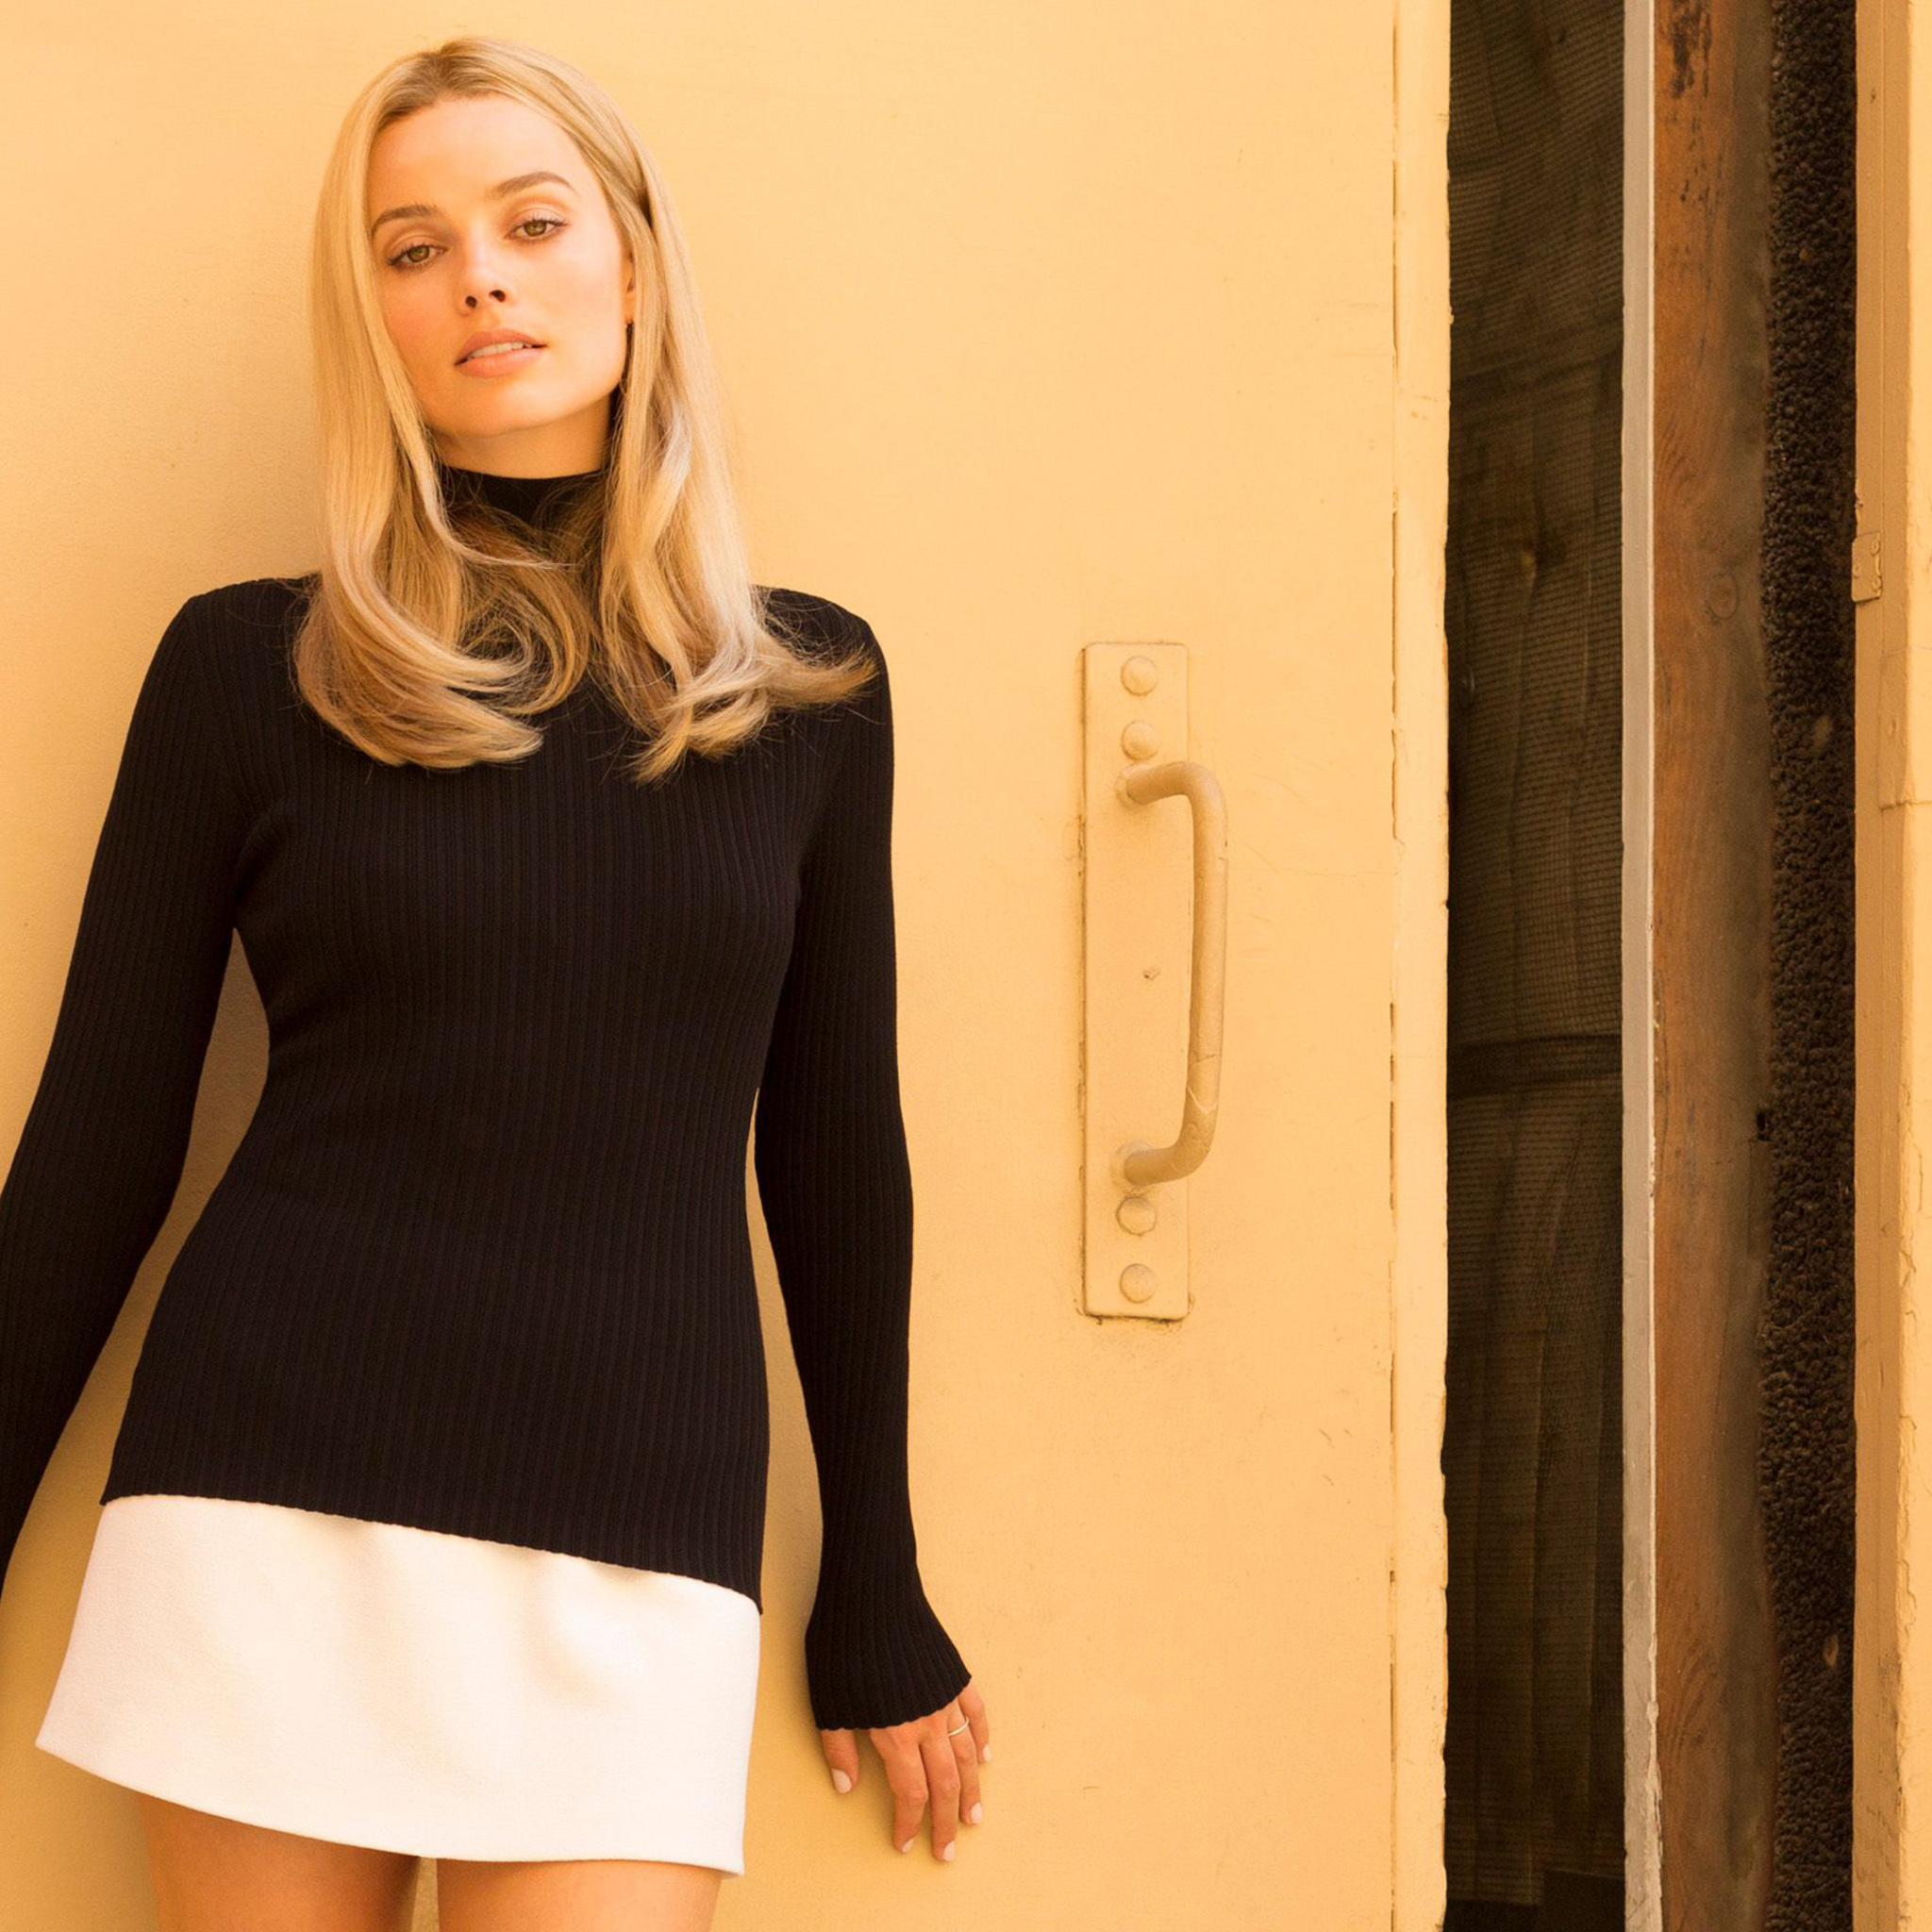 margot-robbie-as-sharon-tate-in-once-upon-a-time-in-hollywood-5j.jpg